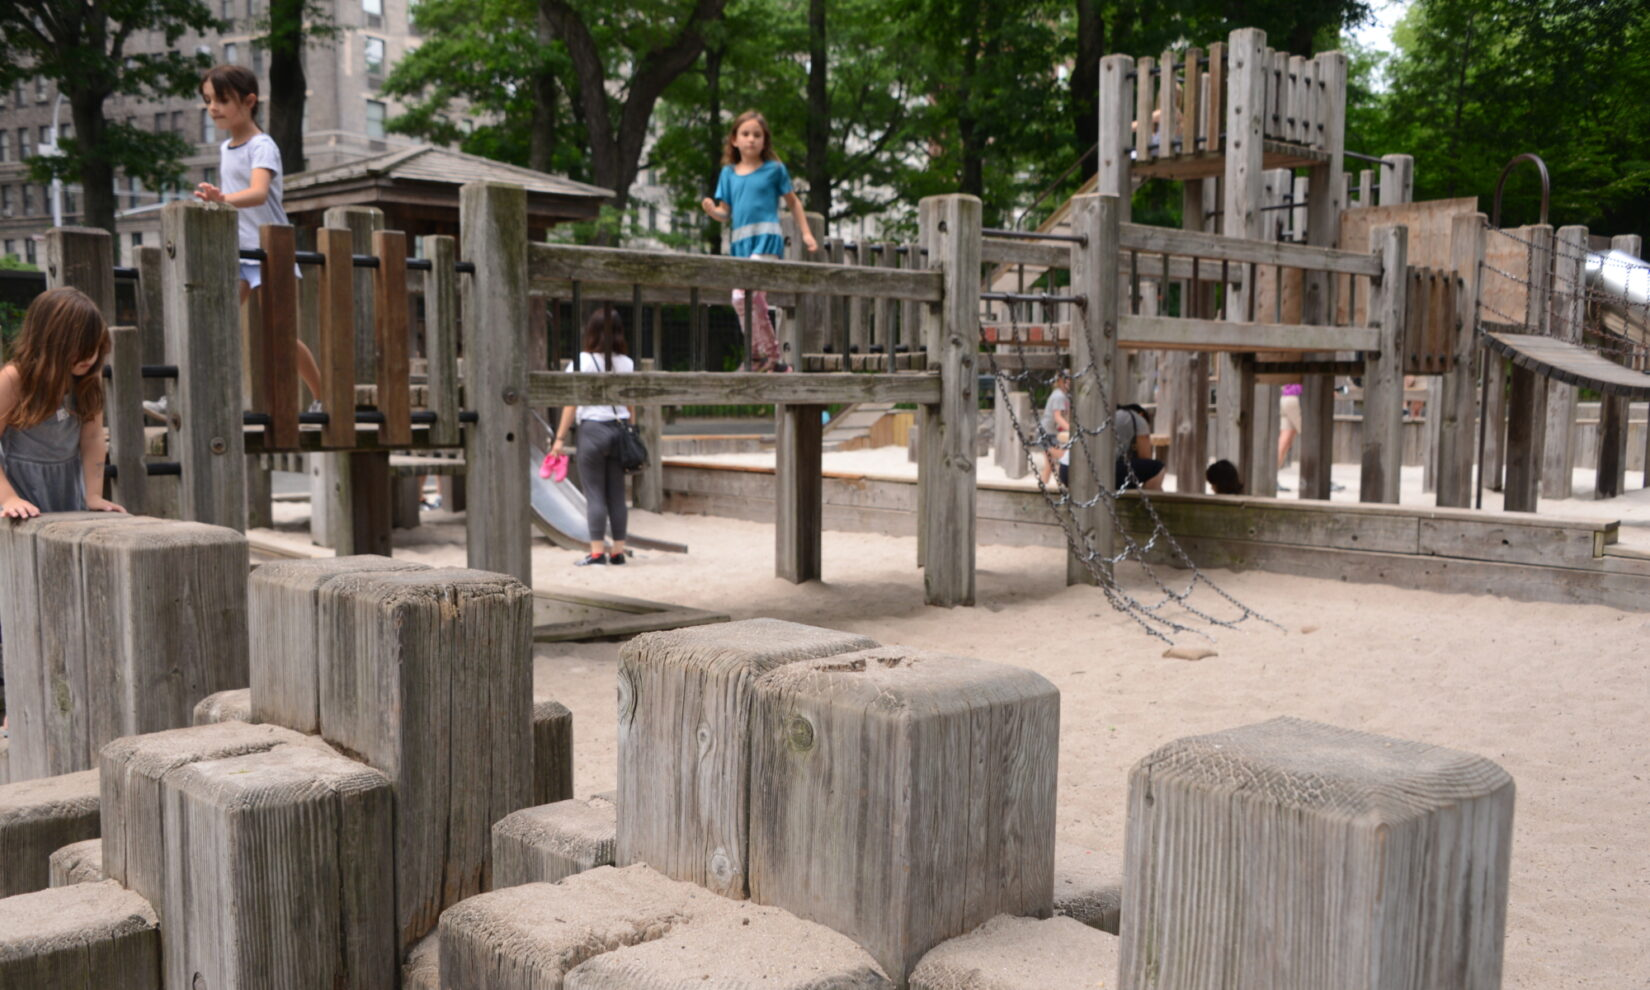 A girl crosses a wooden bridge spanning a sand pit in the playground.